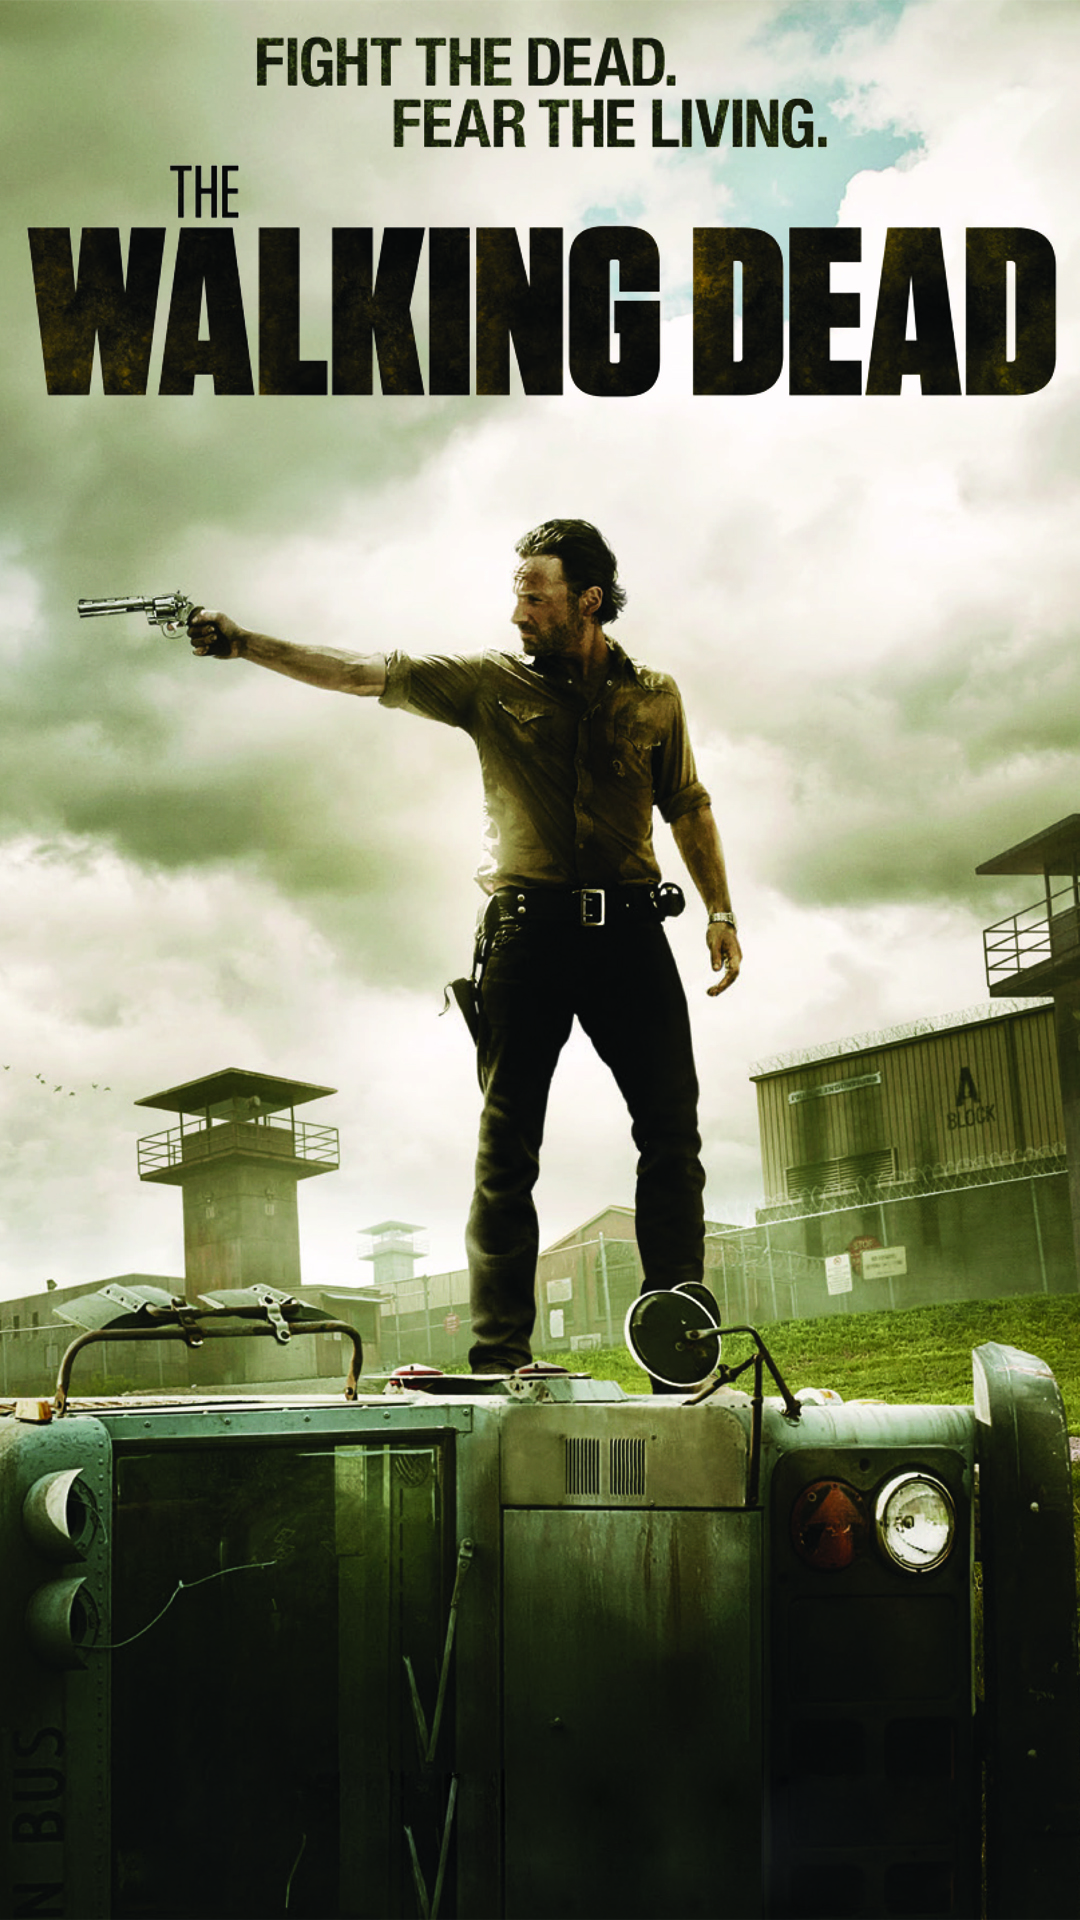 The Walking Dead Best Htc One Wallpapers Free And Easy To Download